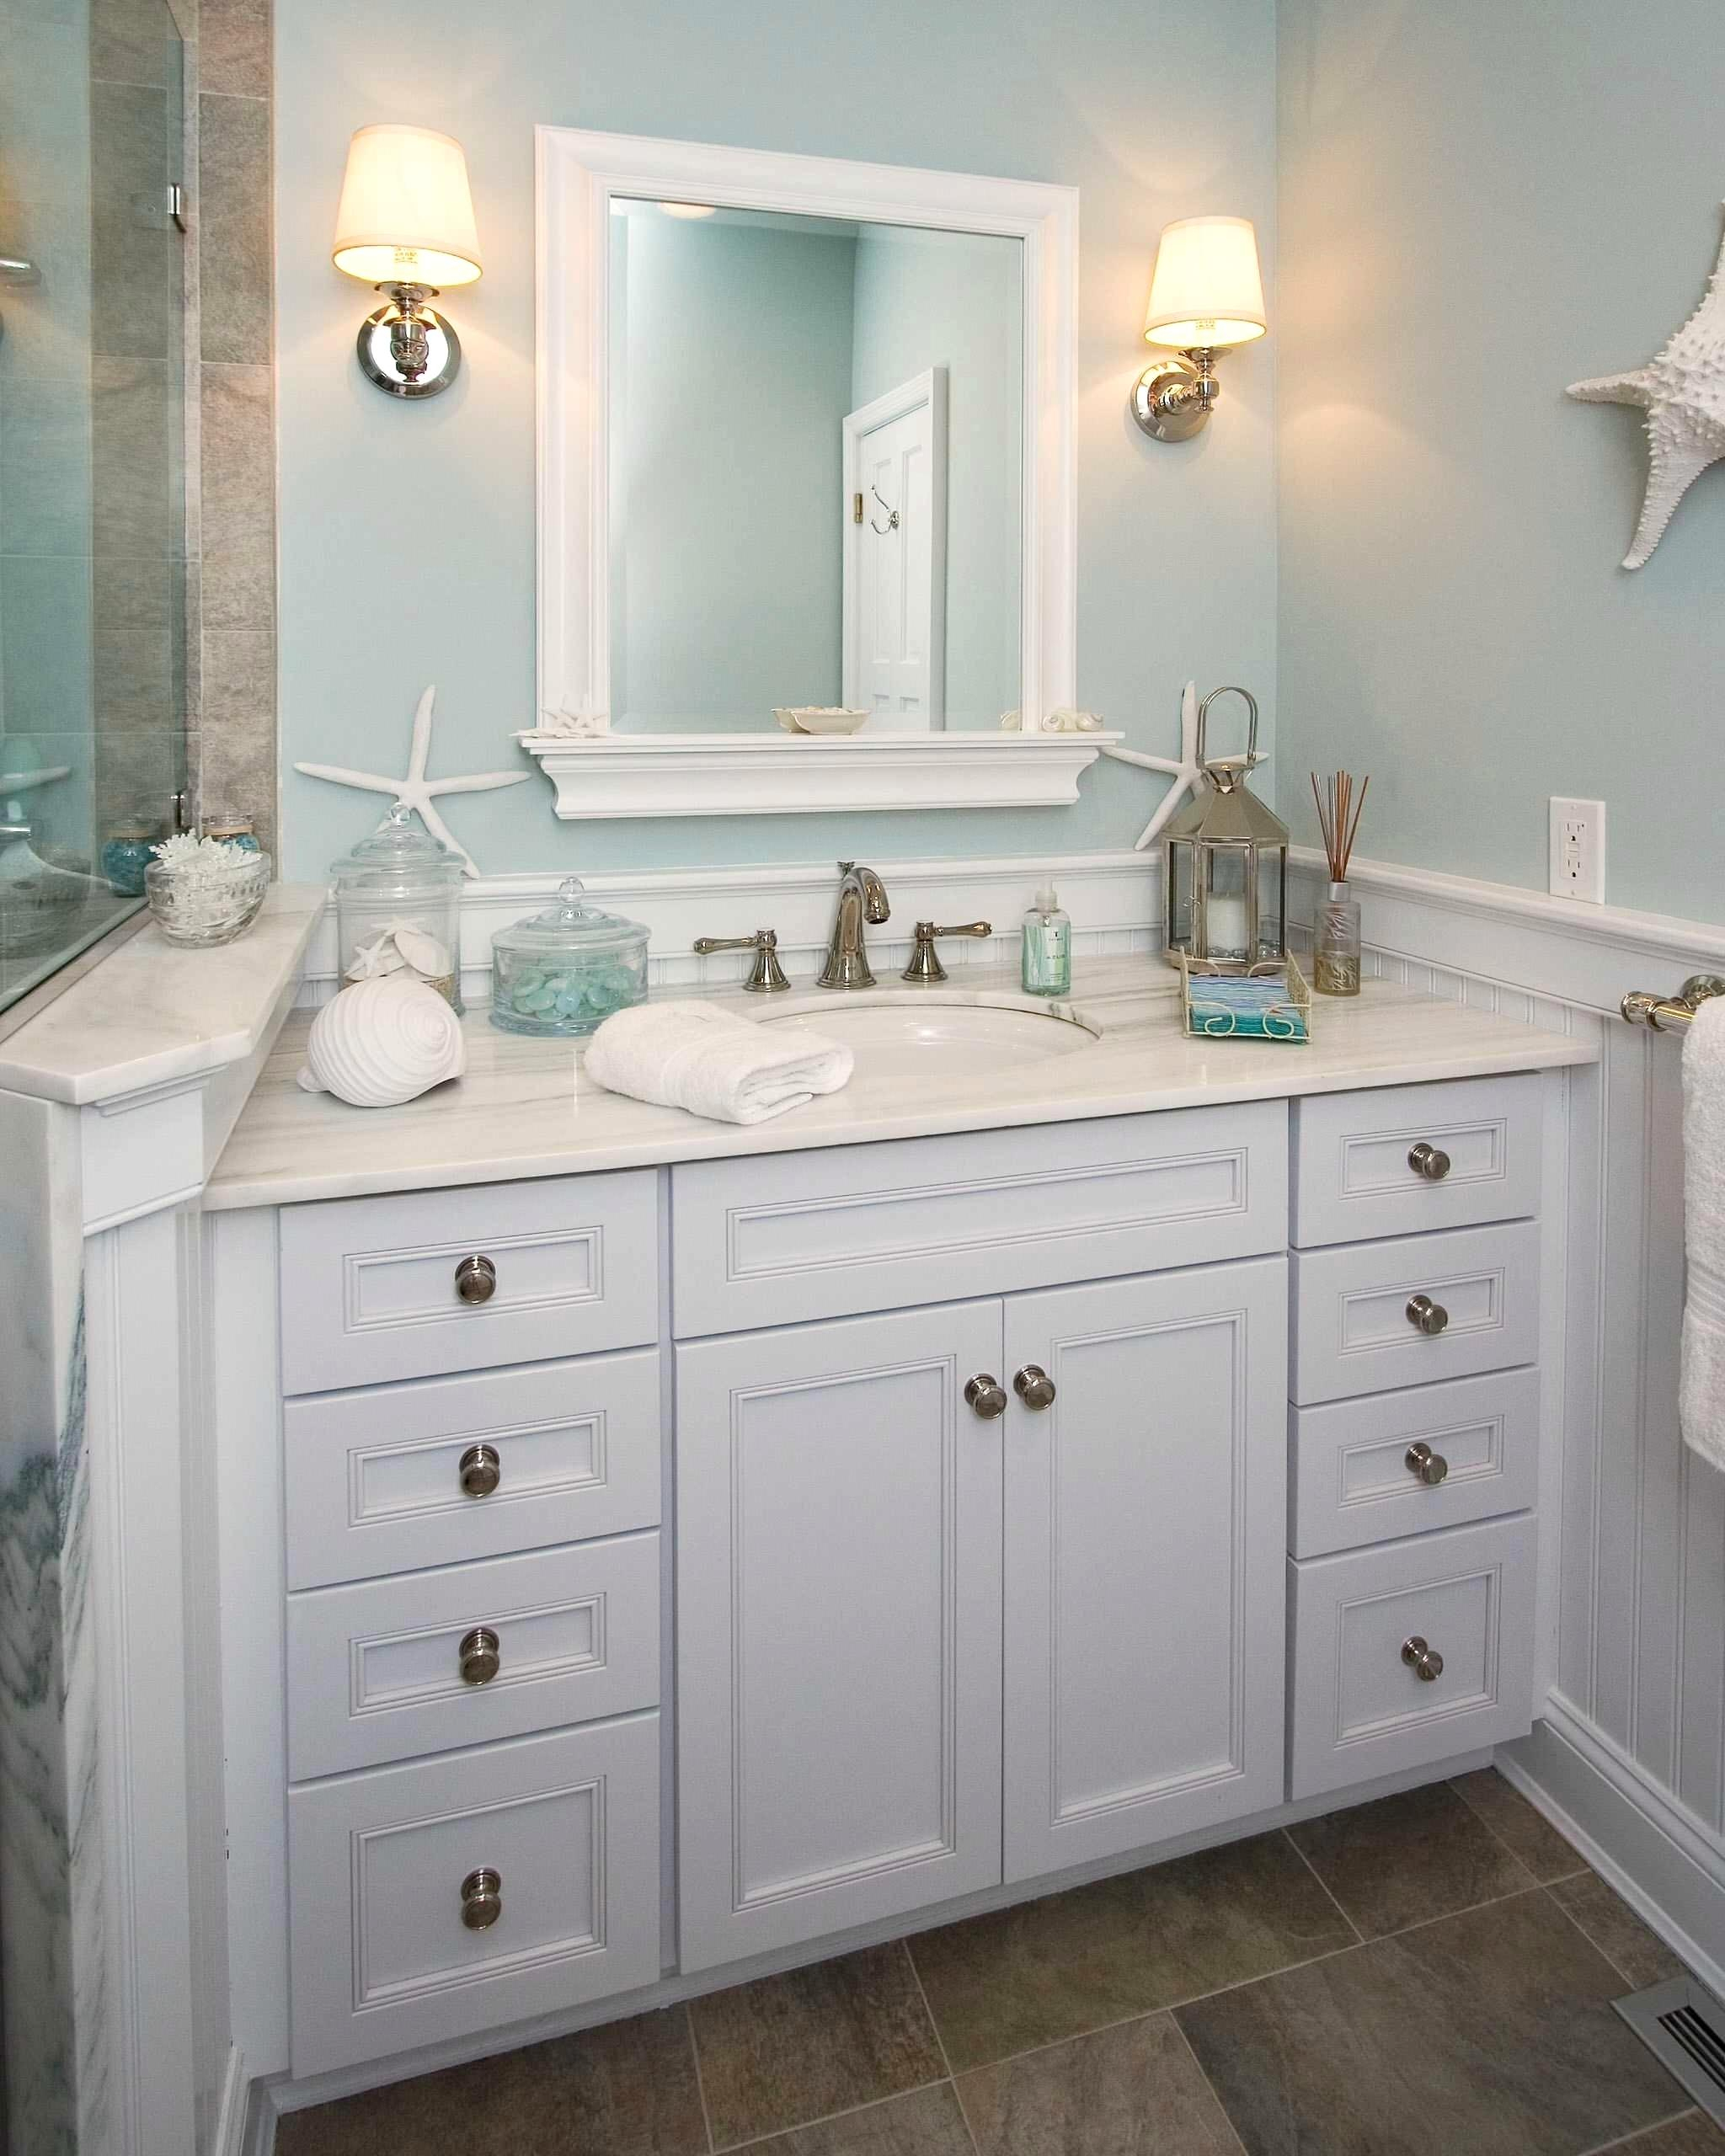 Fabulous Phenomenal-Themed-Bathroom-Ideas-Decorating-Beach-Stunning-Beach for Awesome Beach Themed Bathroom Mirrors